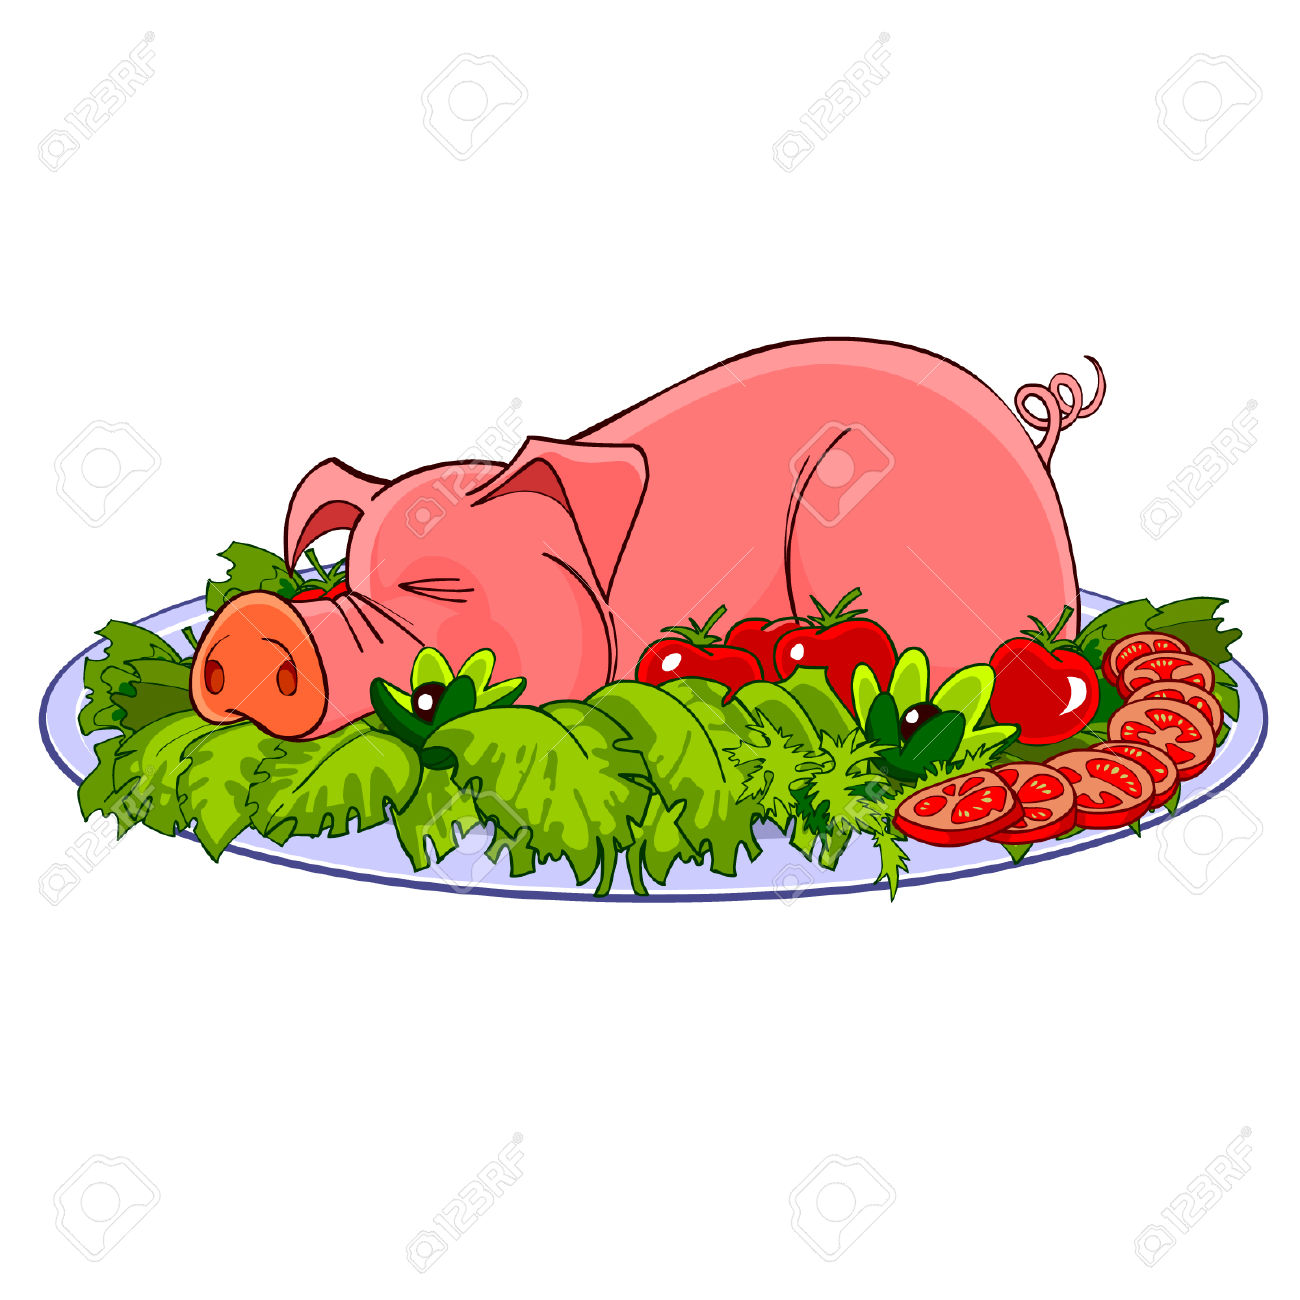 Porkers clipart #20, Download drawings